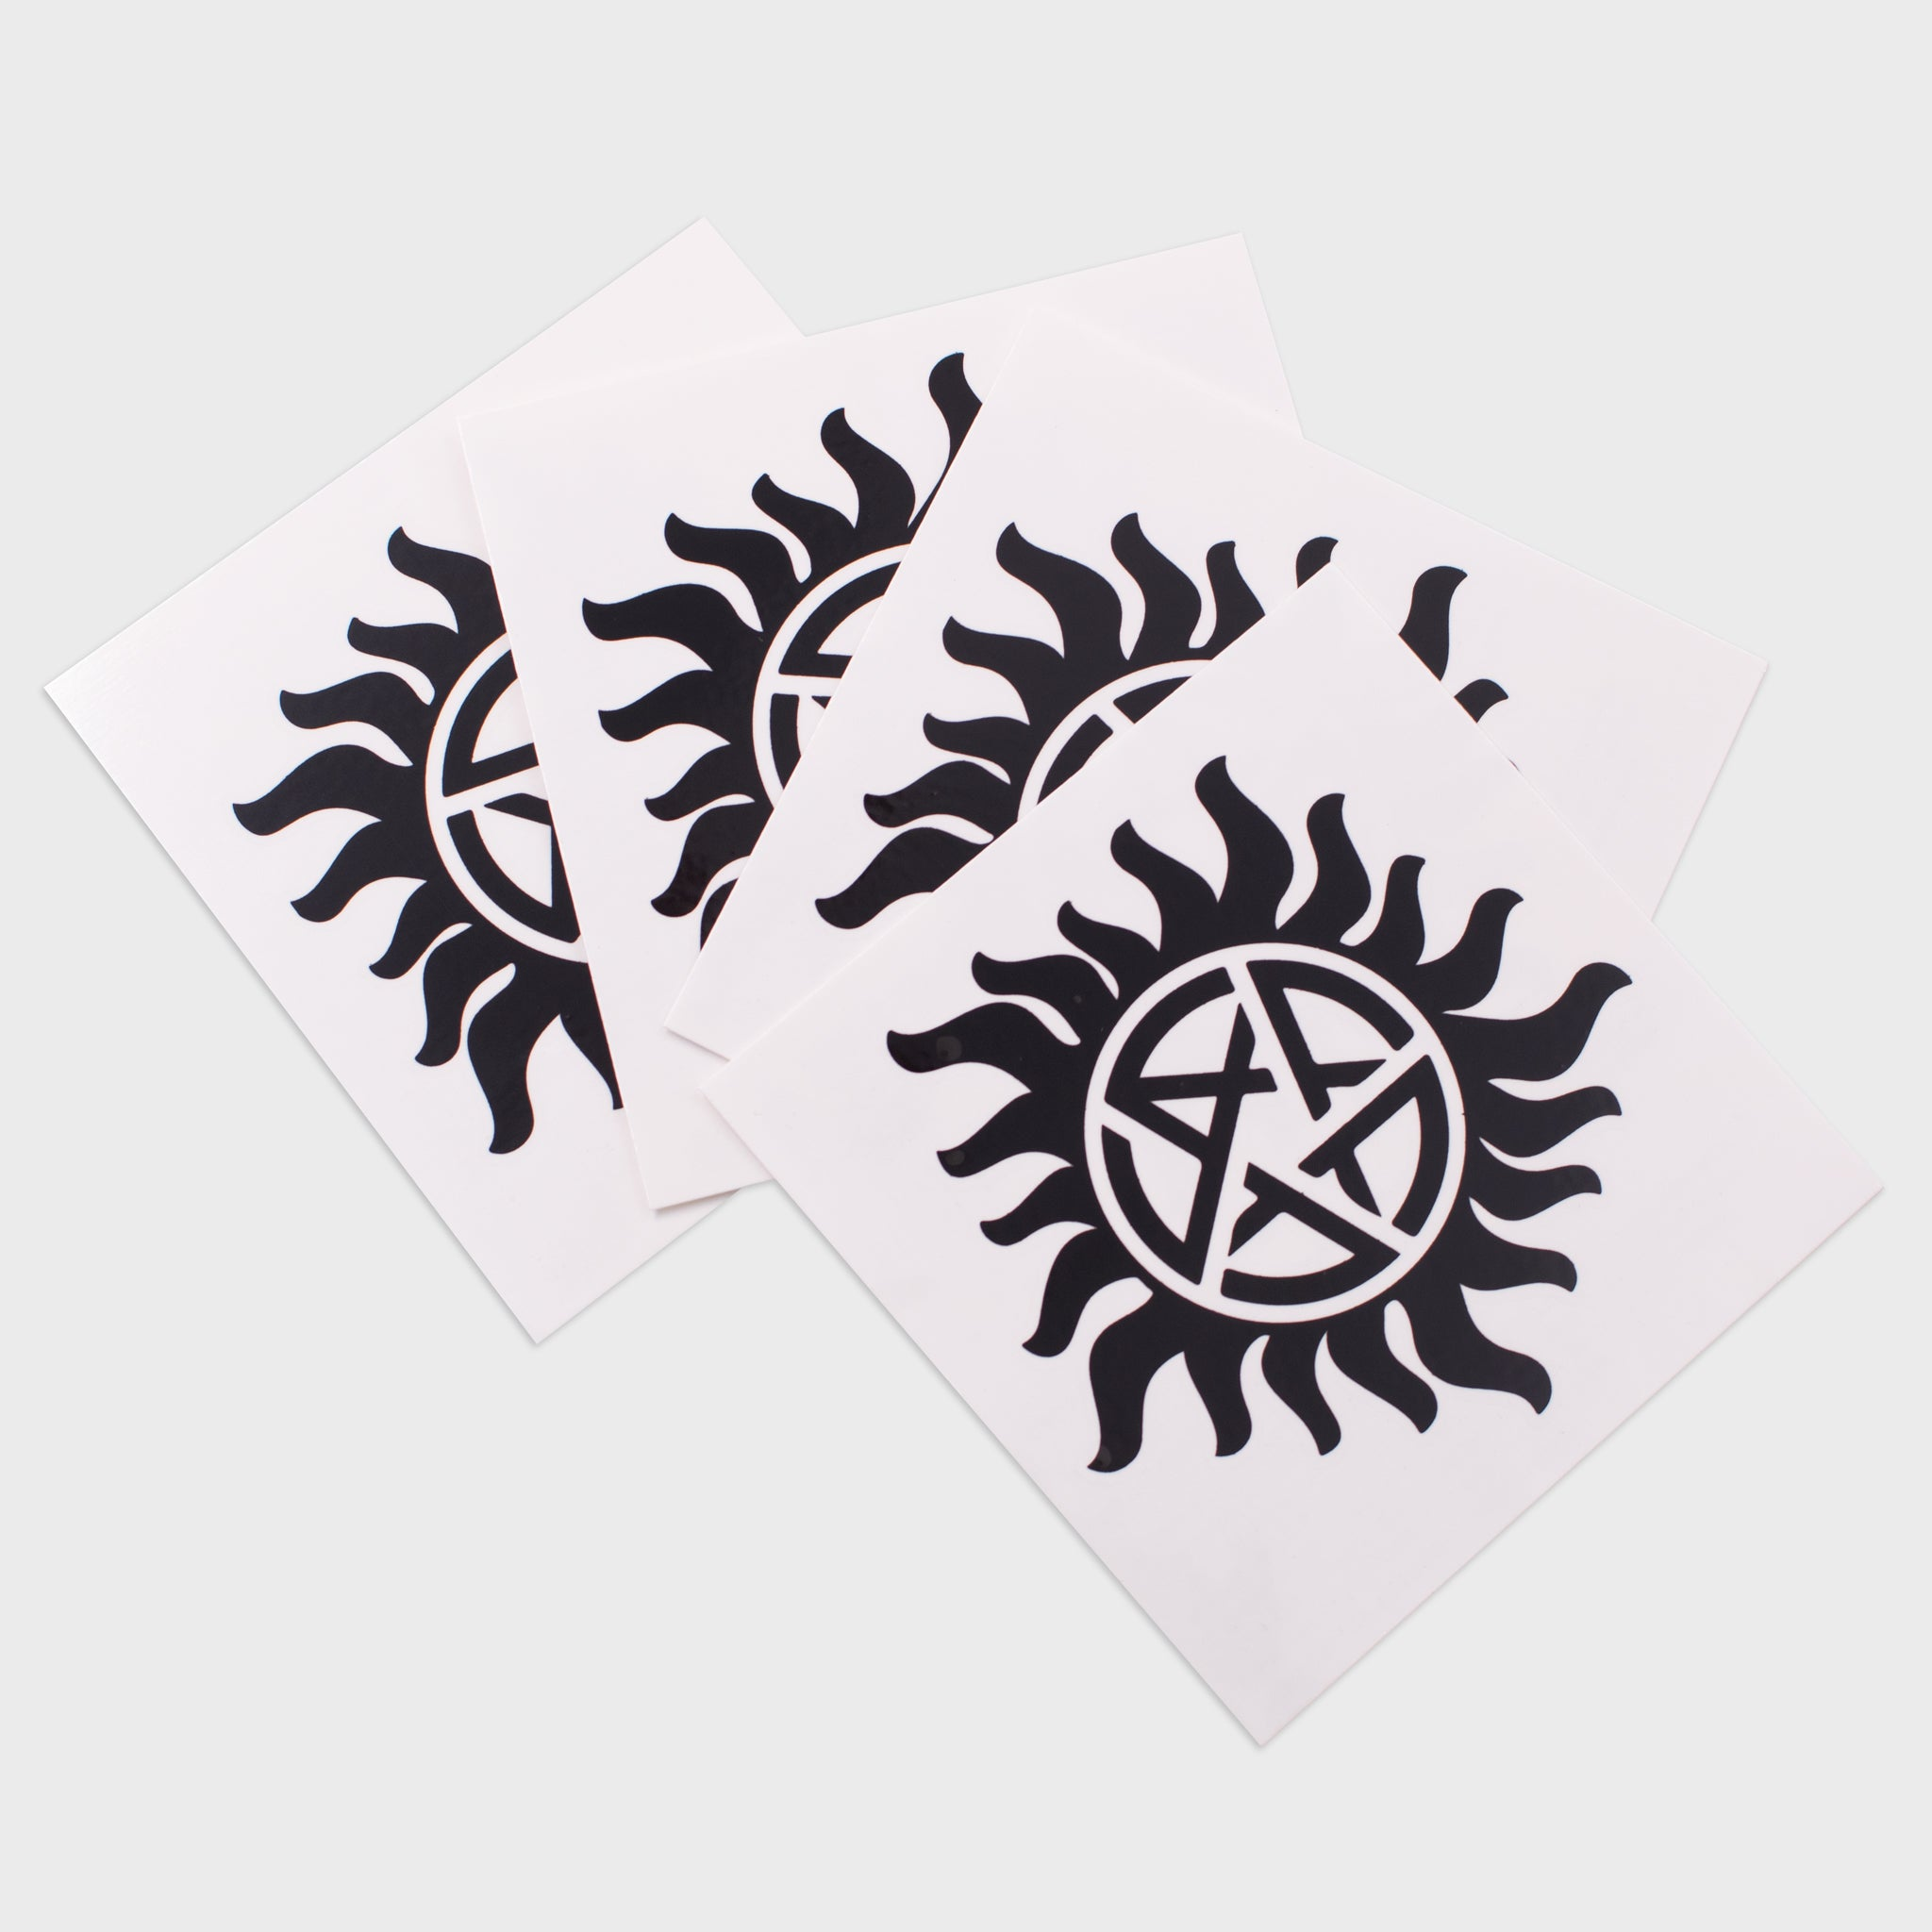 supernatural box dean winchester sam winchester castiel collectible exclusive fans spn spnfamily temporary tattoos removeable